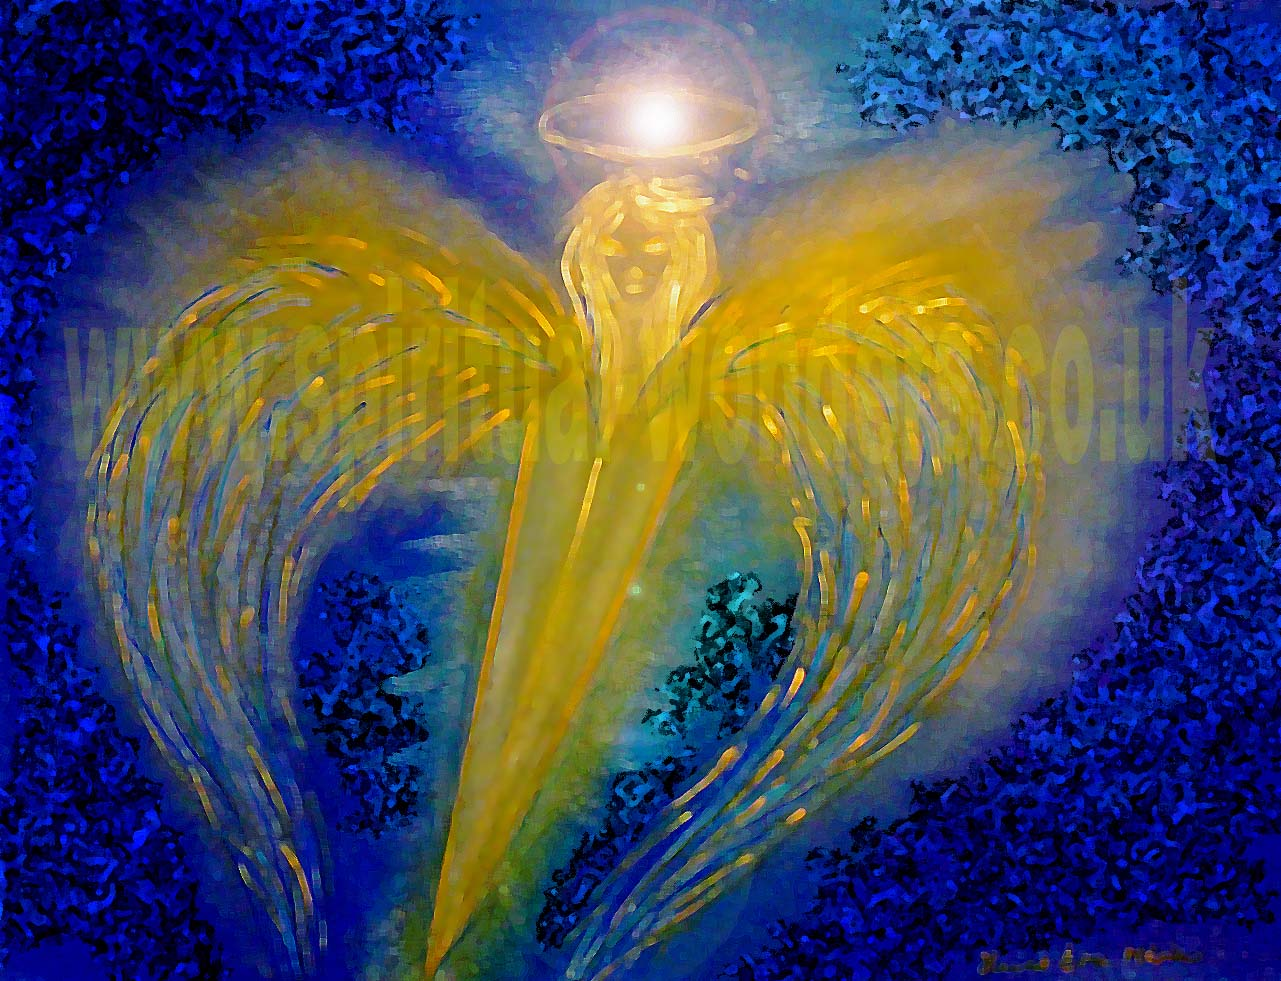 Archangel Michael brings Courage, Protection, Divine Love ...